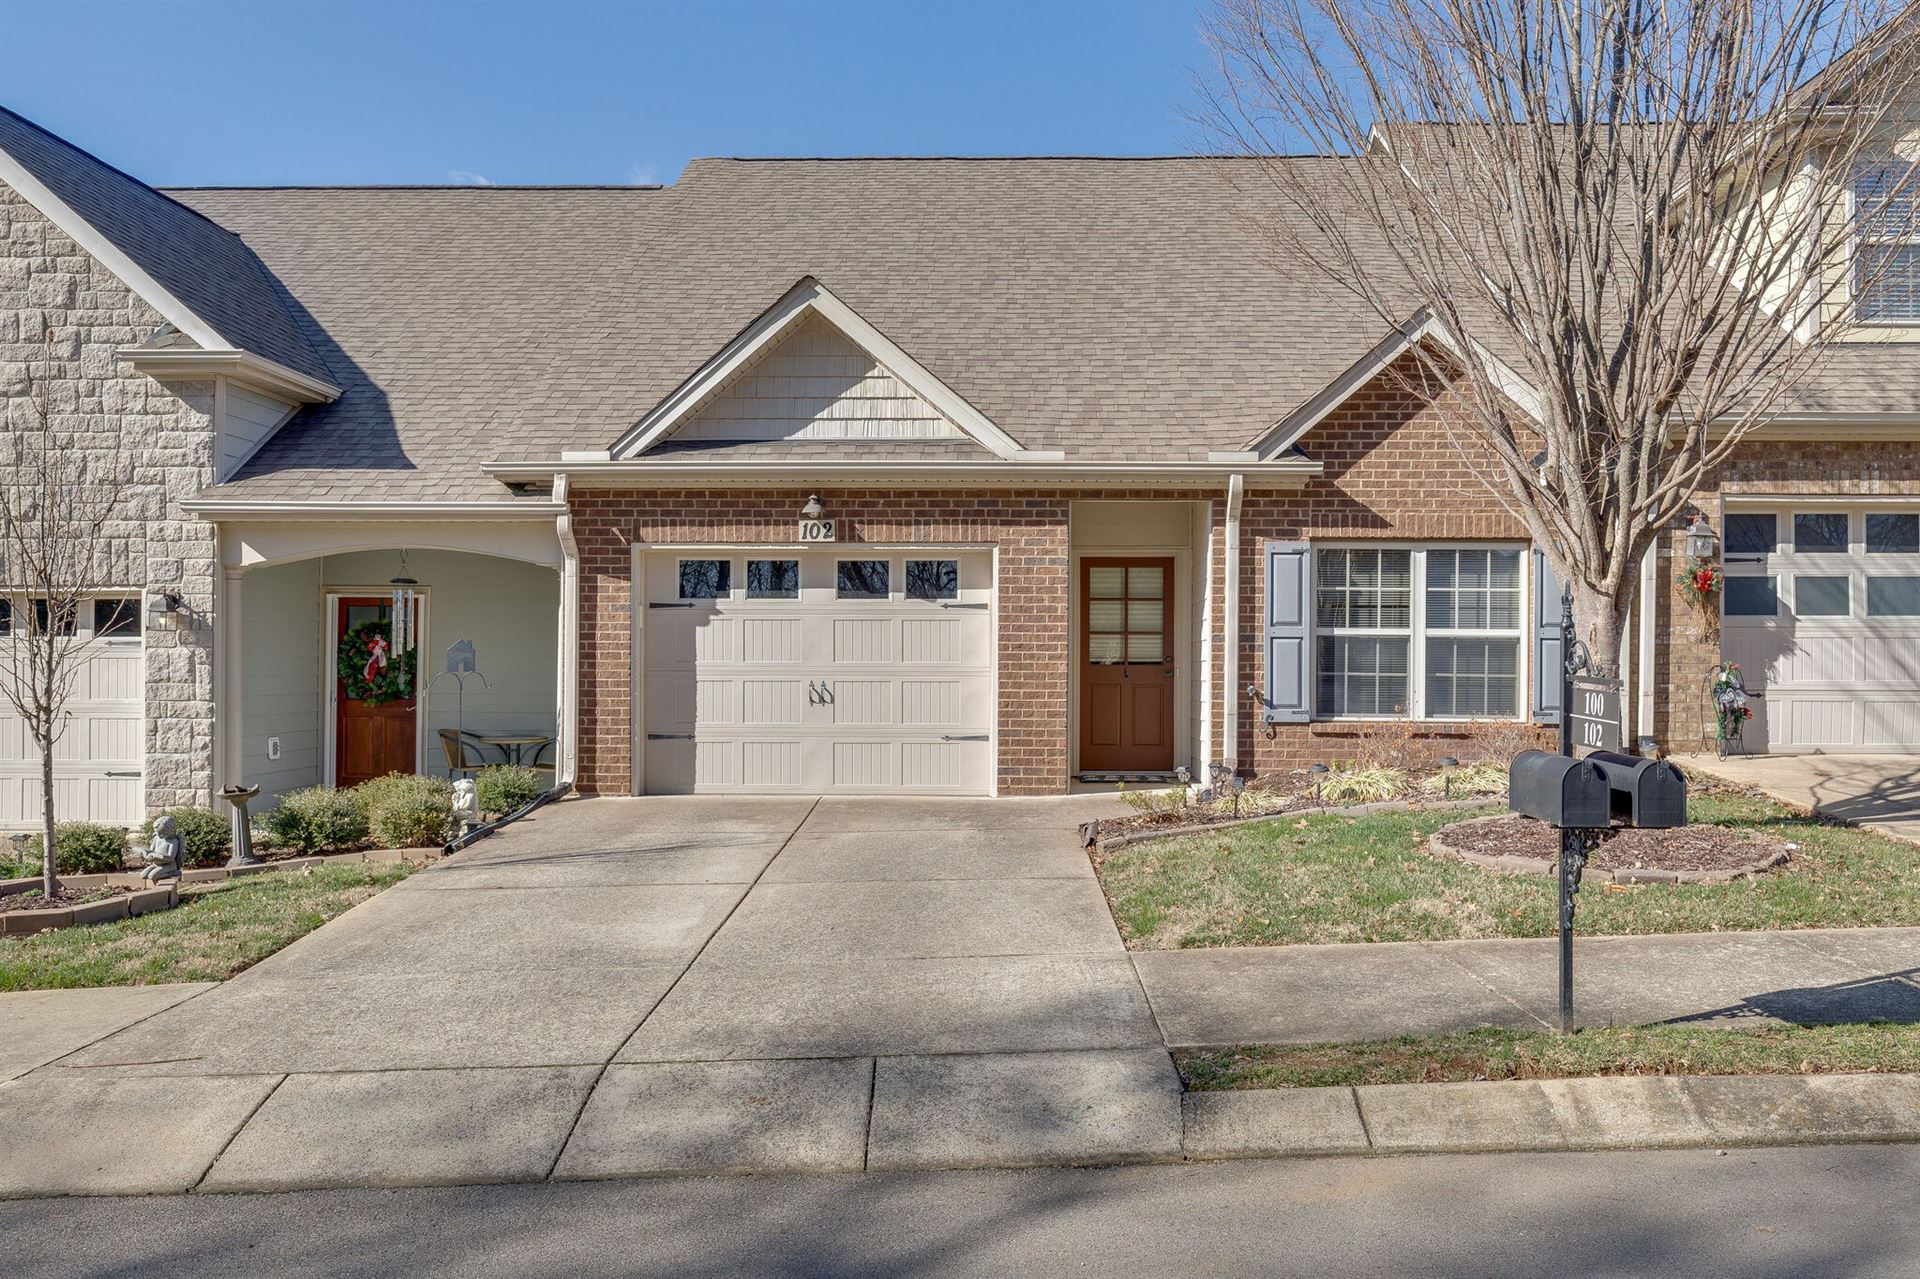 102 Westview Dr, Spring Hill, TN 37174 - MLS#: 2232594